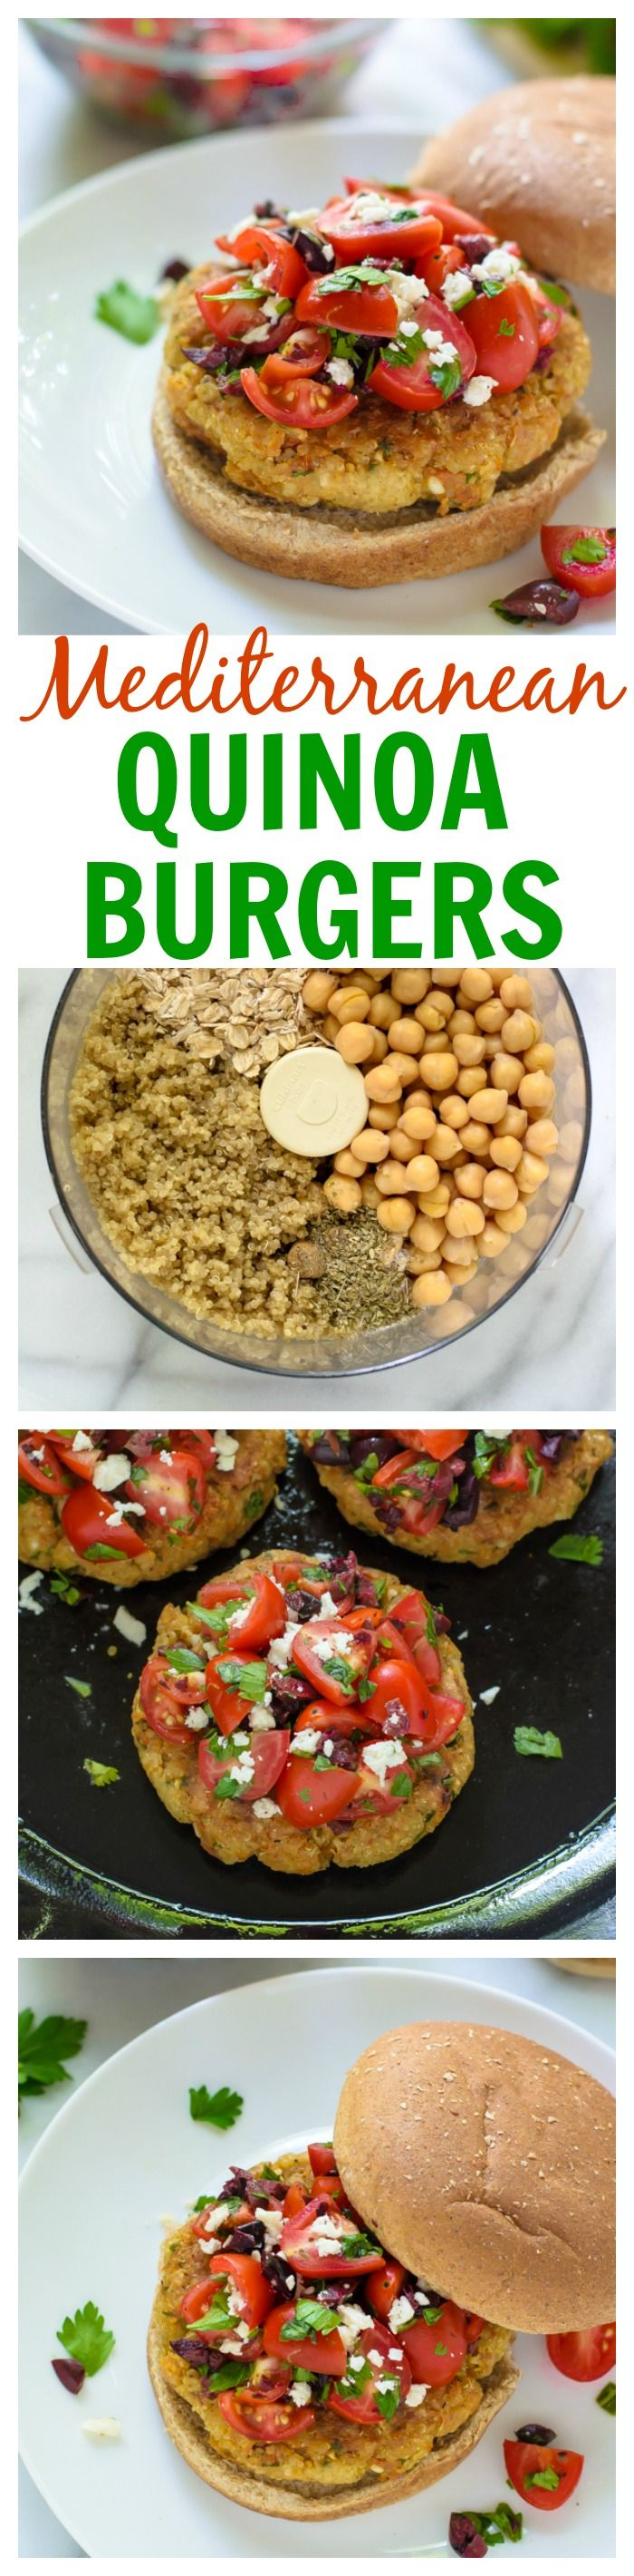 Meat-lover approved! Mediterranean Quinoa Burgers. Crispy, fresh, and great leftover too. http://www.dailyquinoa.com